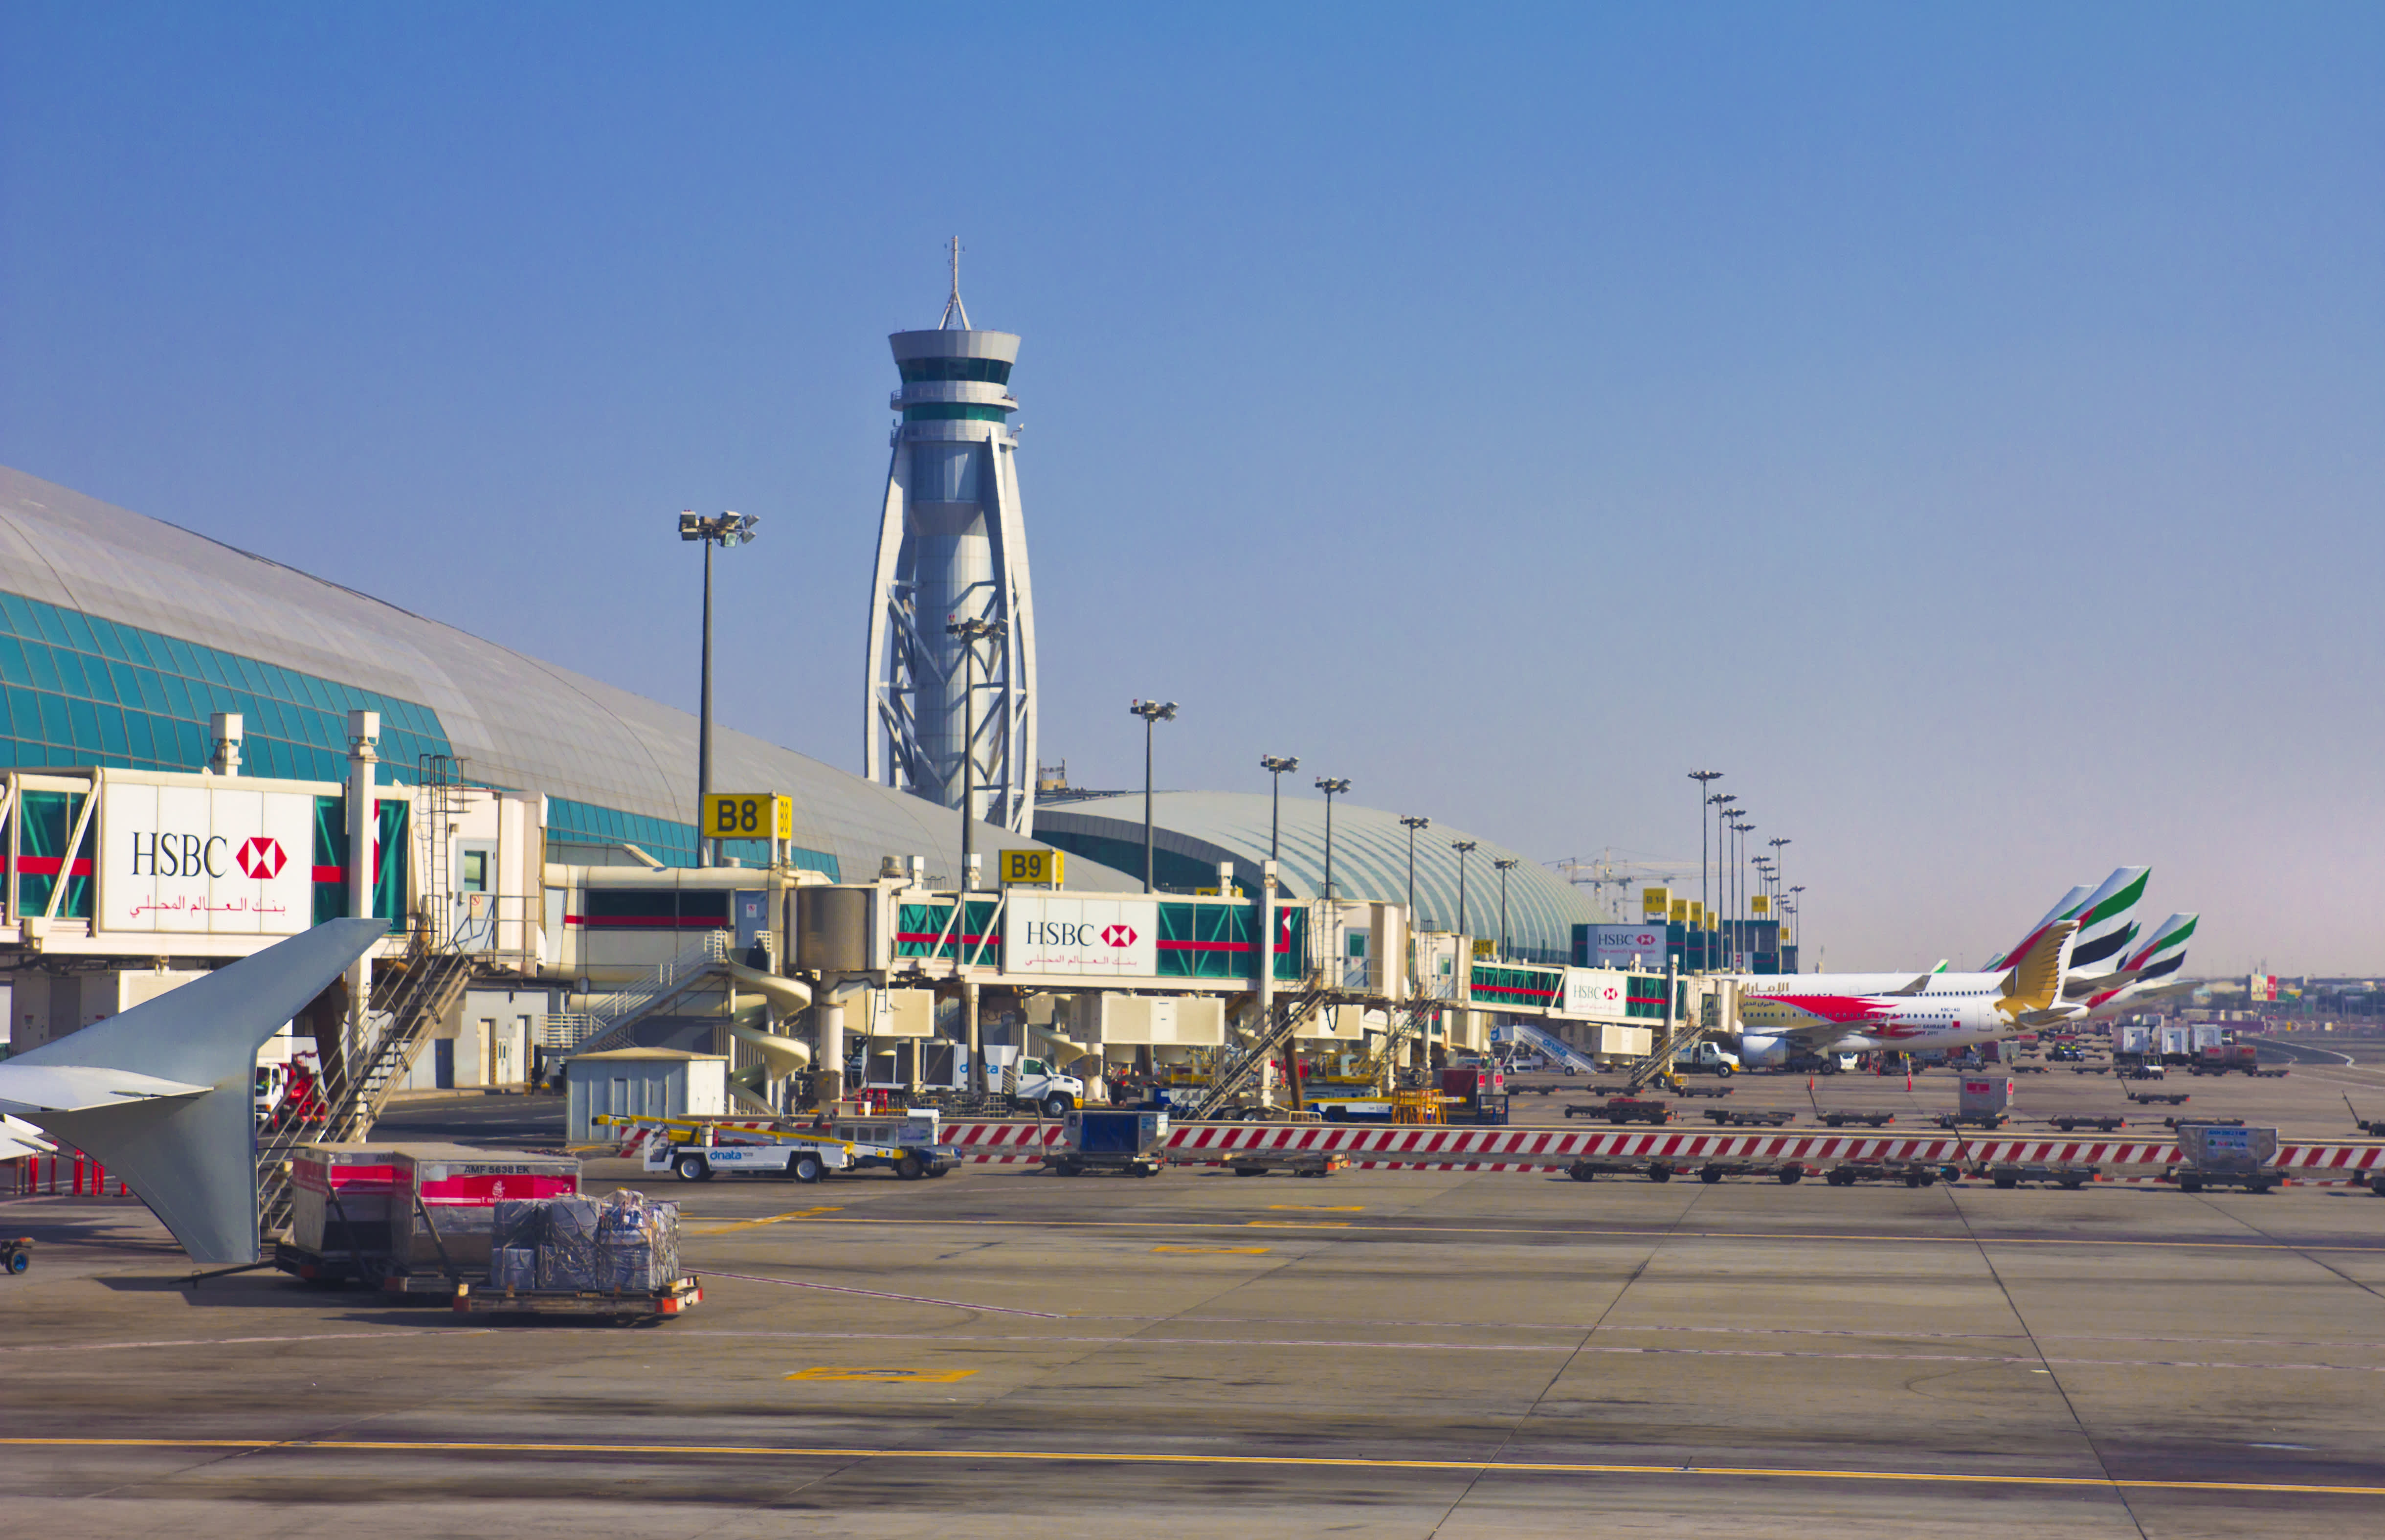 UAE bans citizens from traveling, mandates 14-day quarantine for entrants